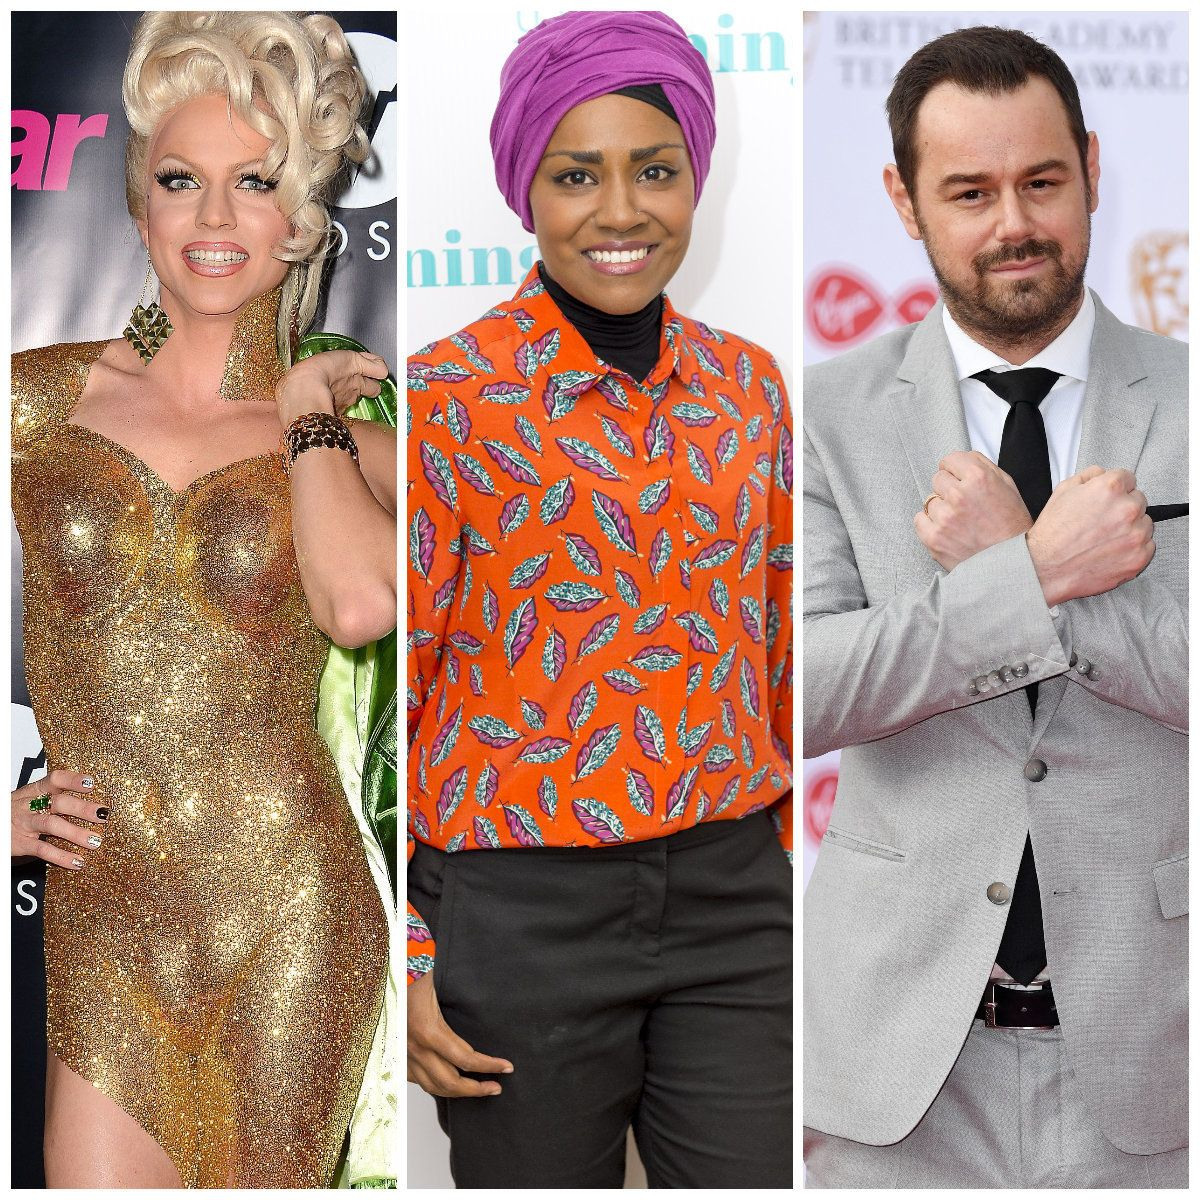 The 15 Celebs 'Strictly' Bosses *Should* Have Signed Up For The New Series